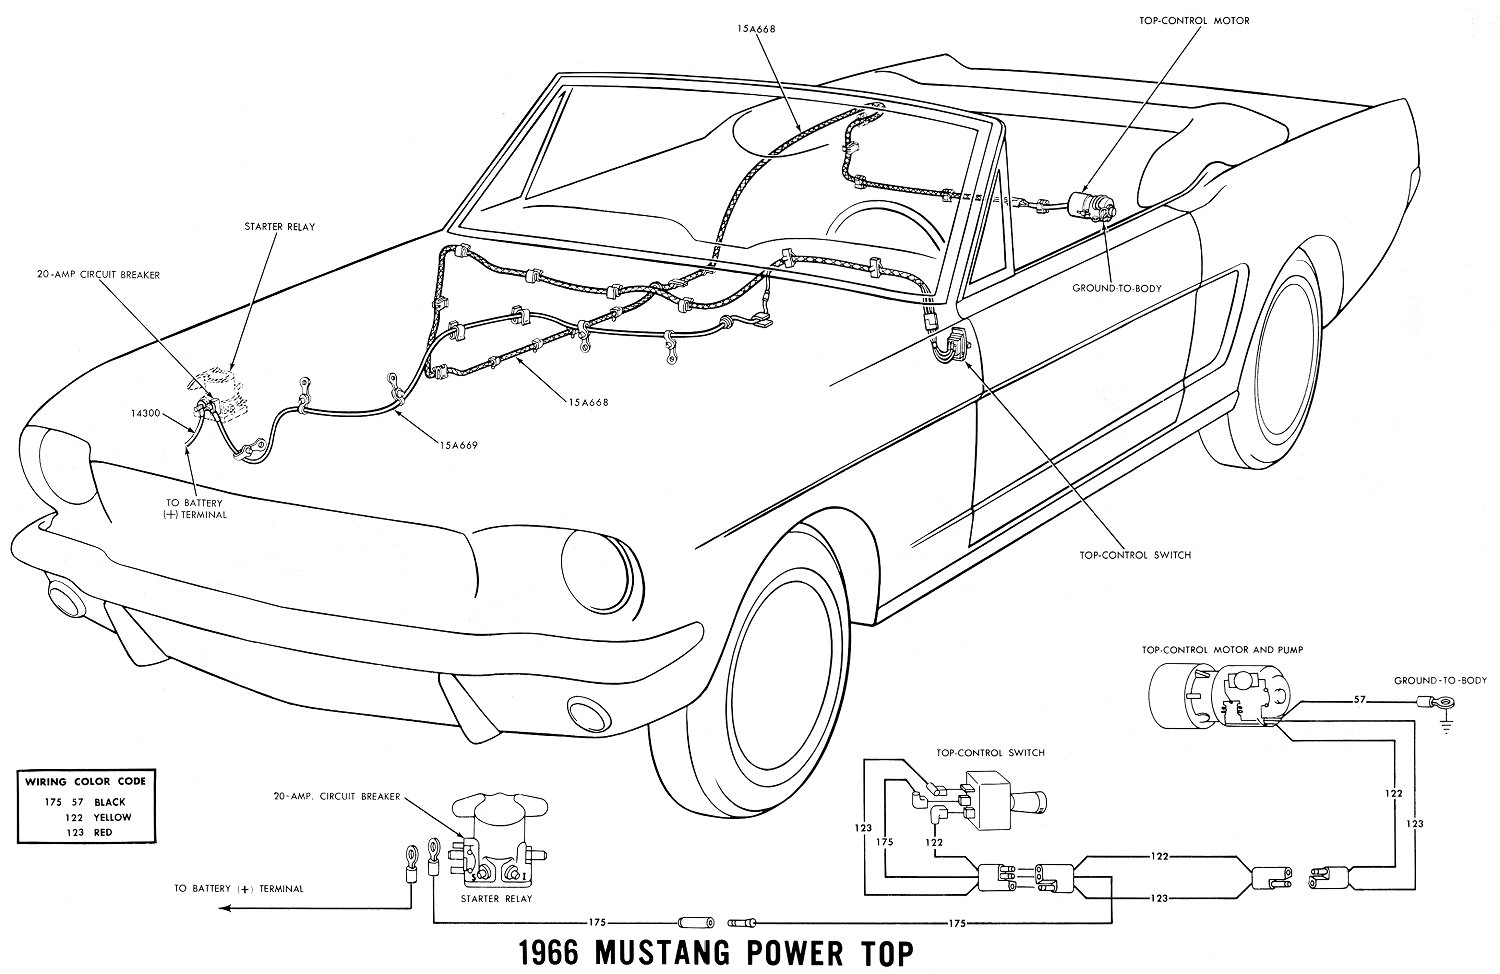 66 Mustang Tail Light Wiring Diagram Library 1968 Ford F100 Wiper Switch Help 1966 Convertible Top Not Working Dash